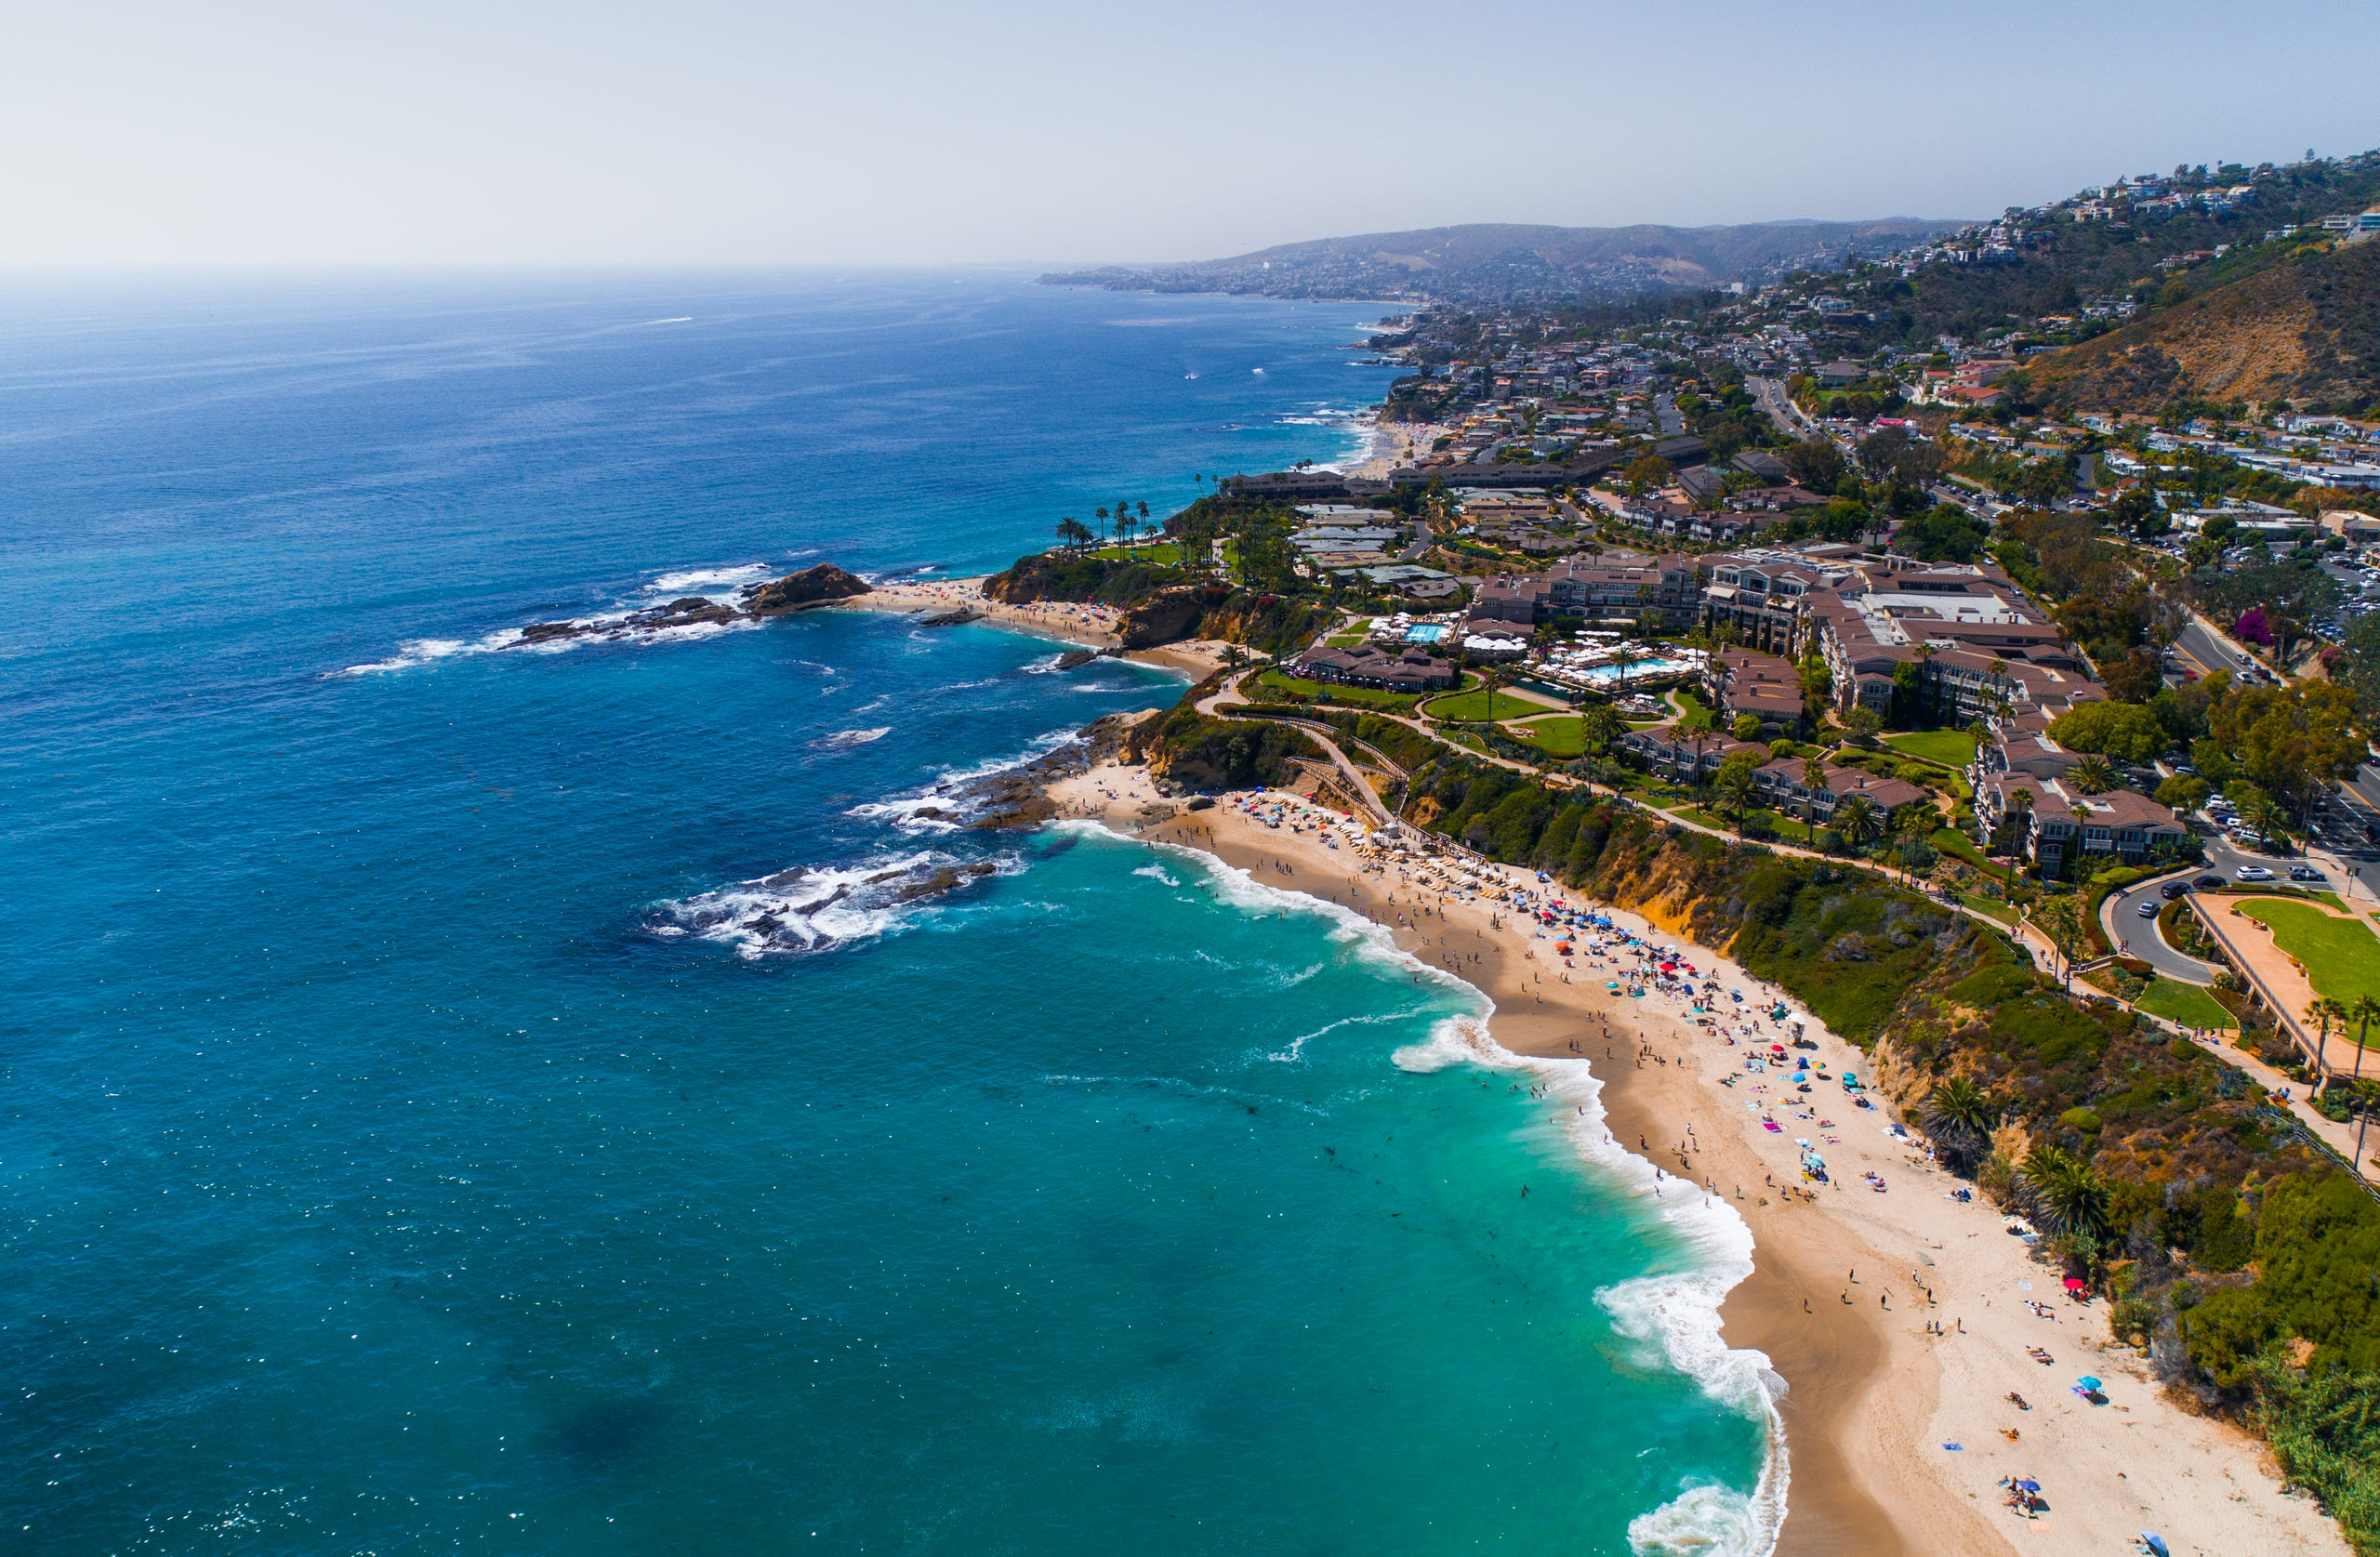 Los Angeles To San Diego See Towns Of Seal Beach San Clemente More